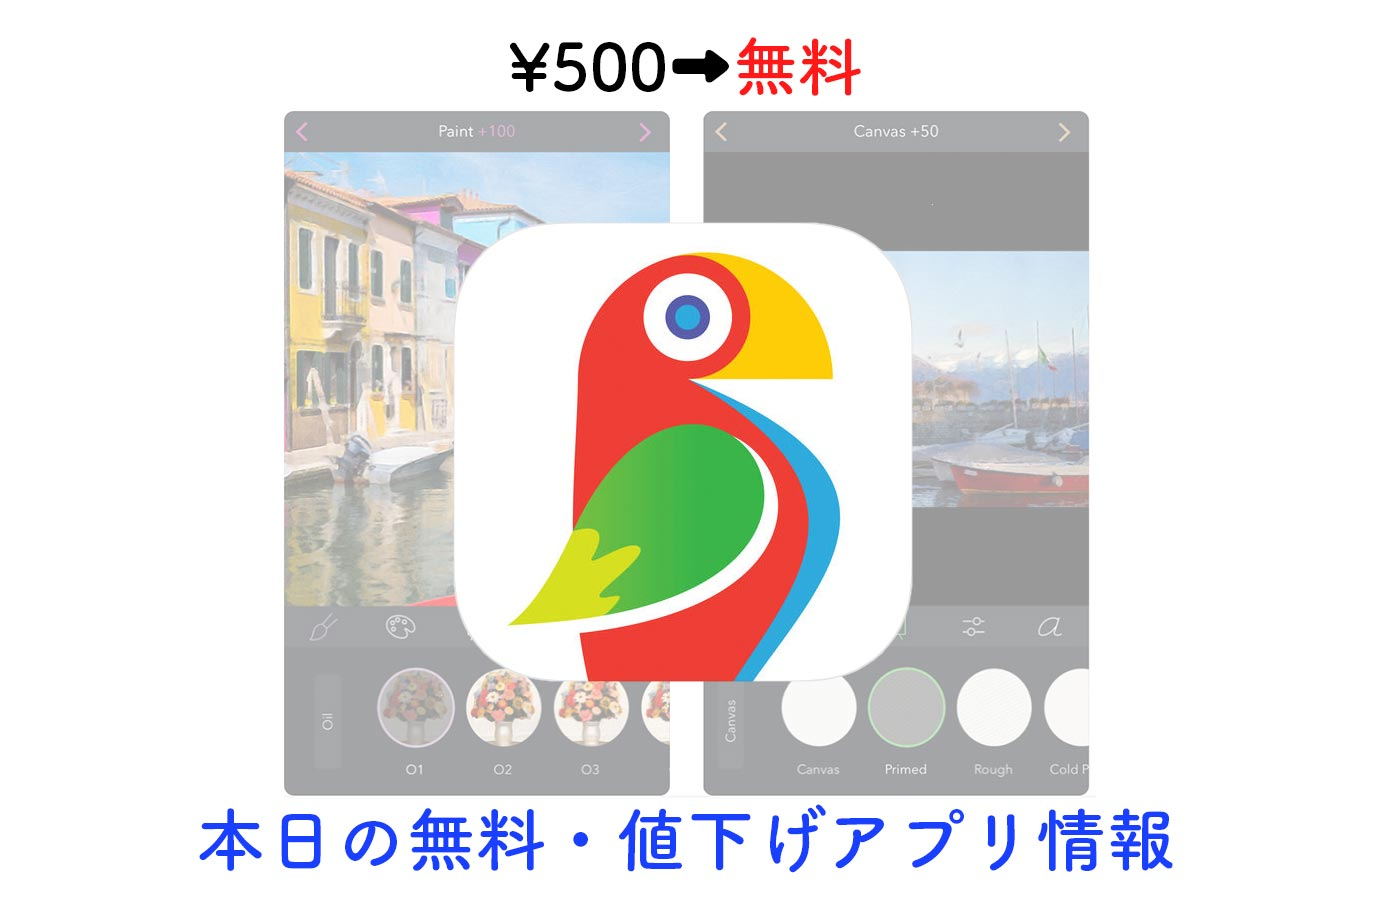 500円→無料、写真を絵画のように加工できる「Brushstroke」など【5/26】セールアプリ情報